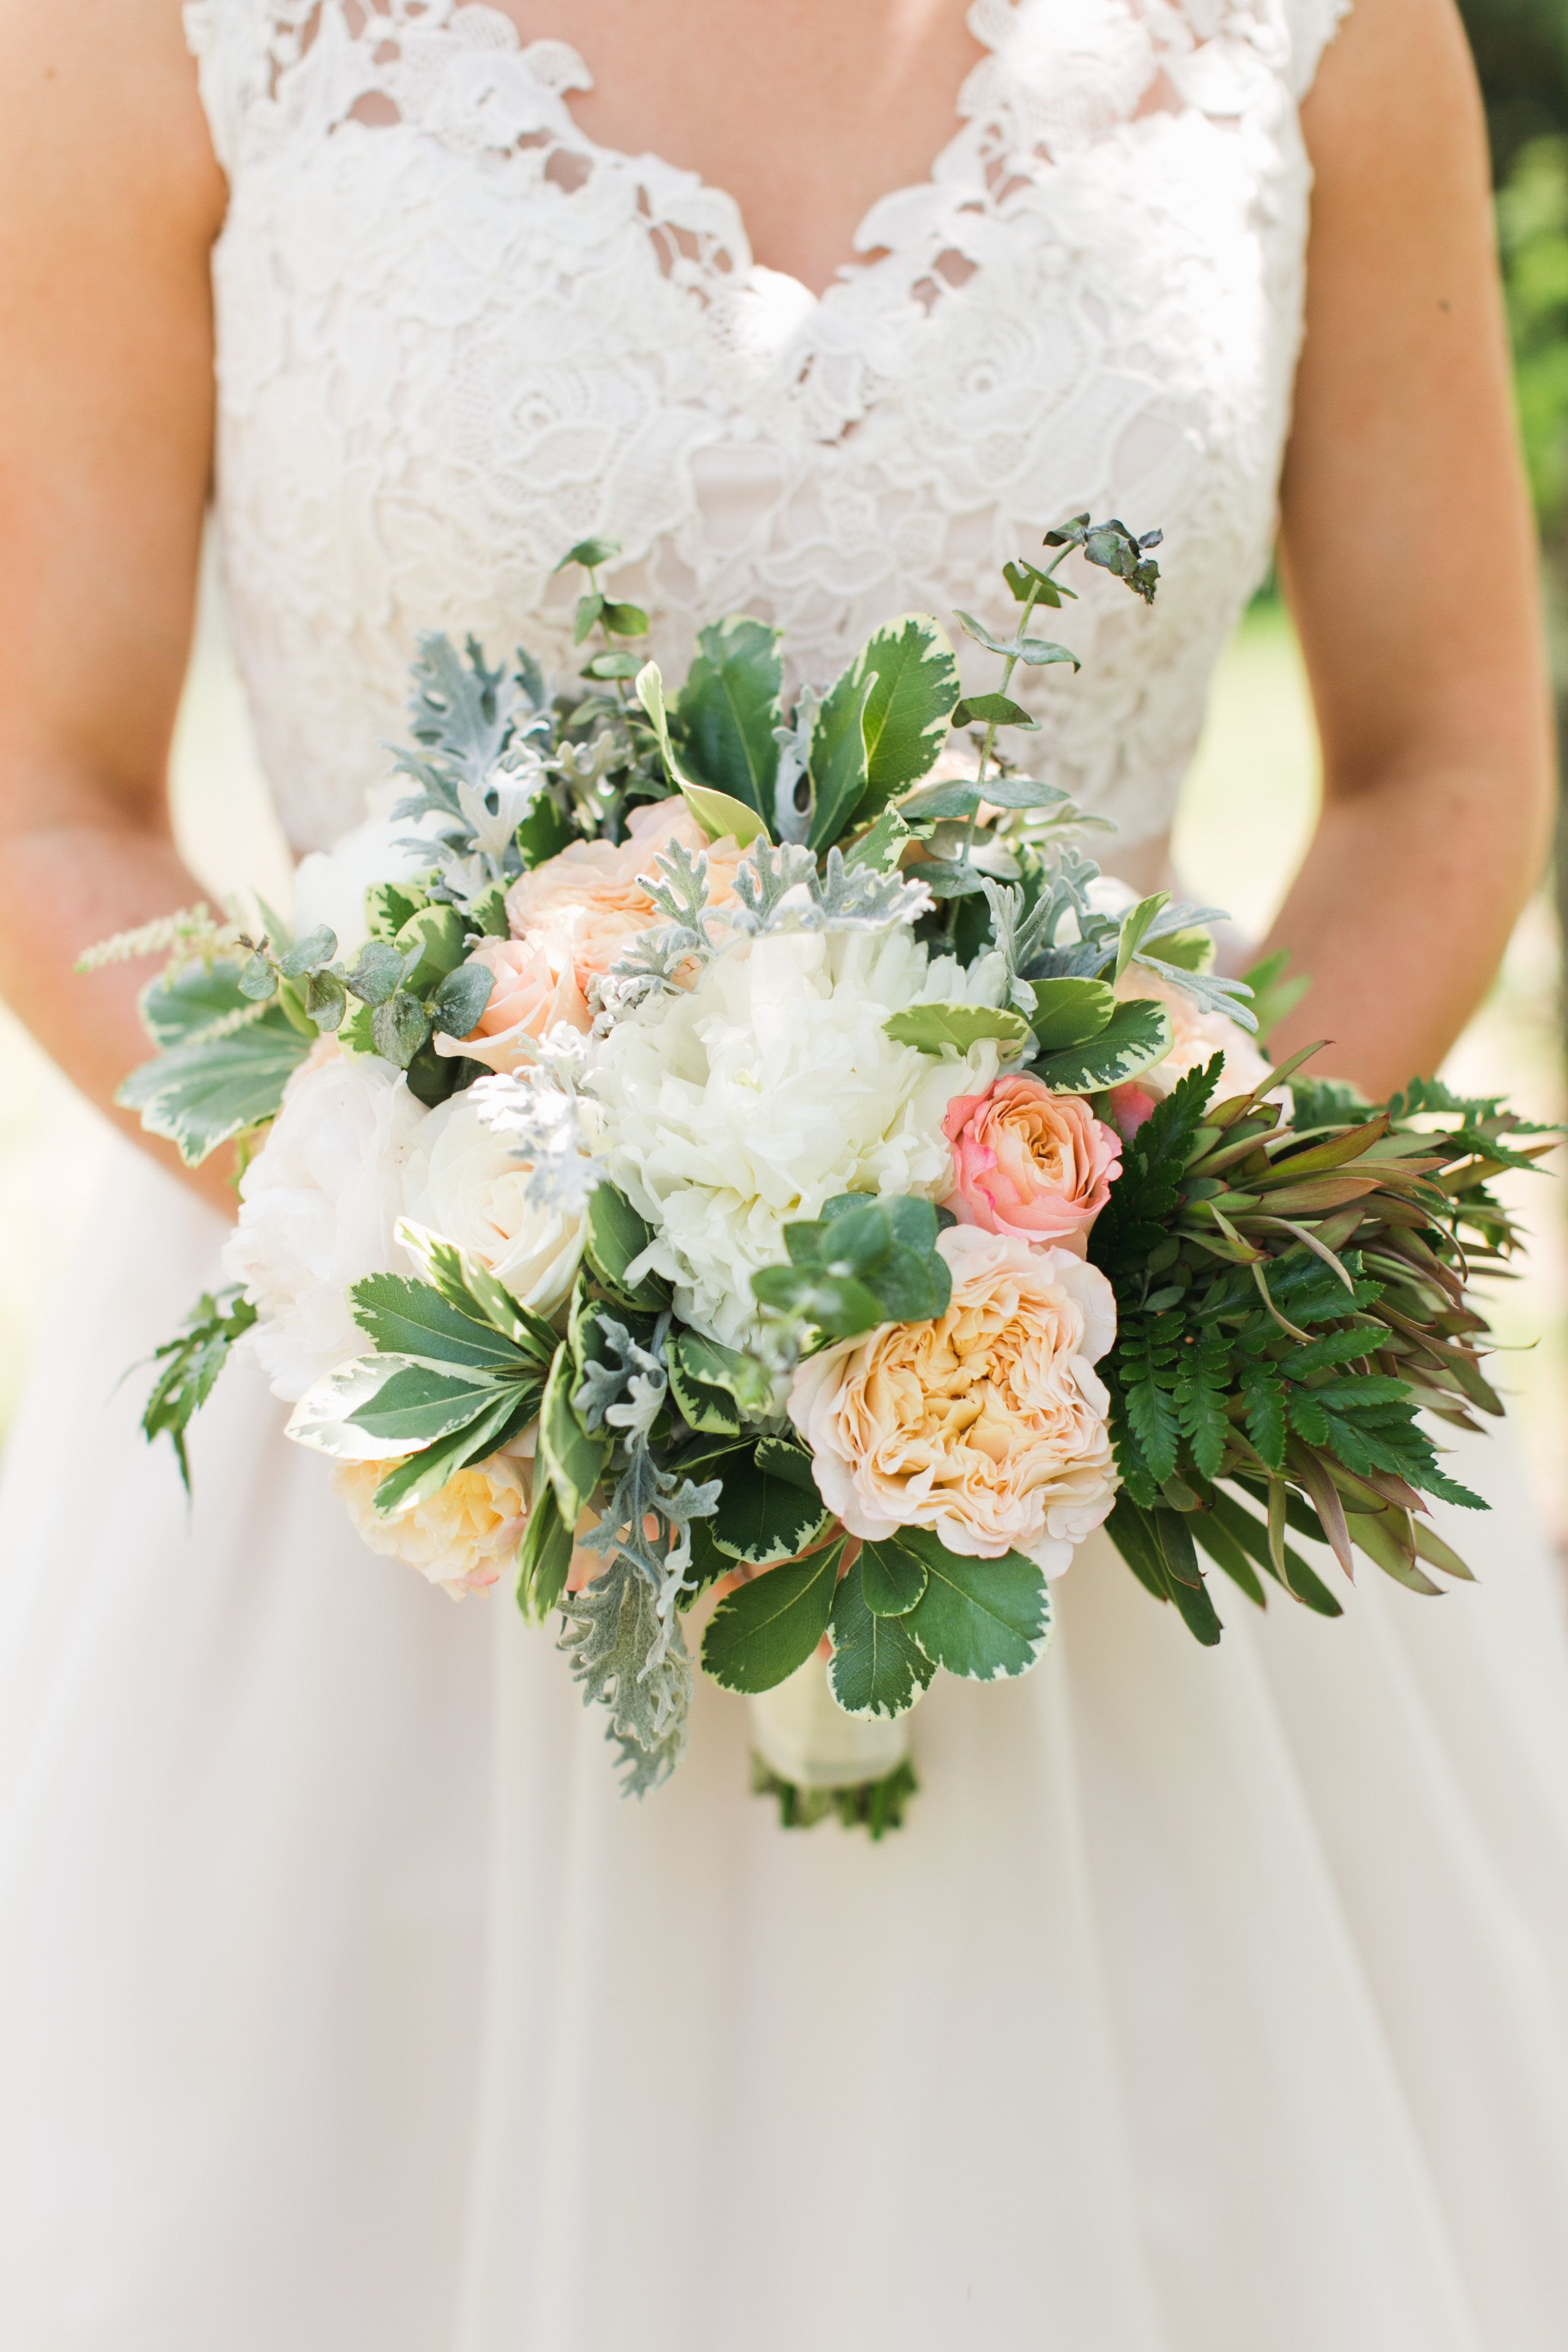 A Darling Spring Garden Affair (With images) | Rose ...